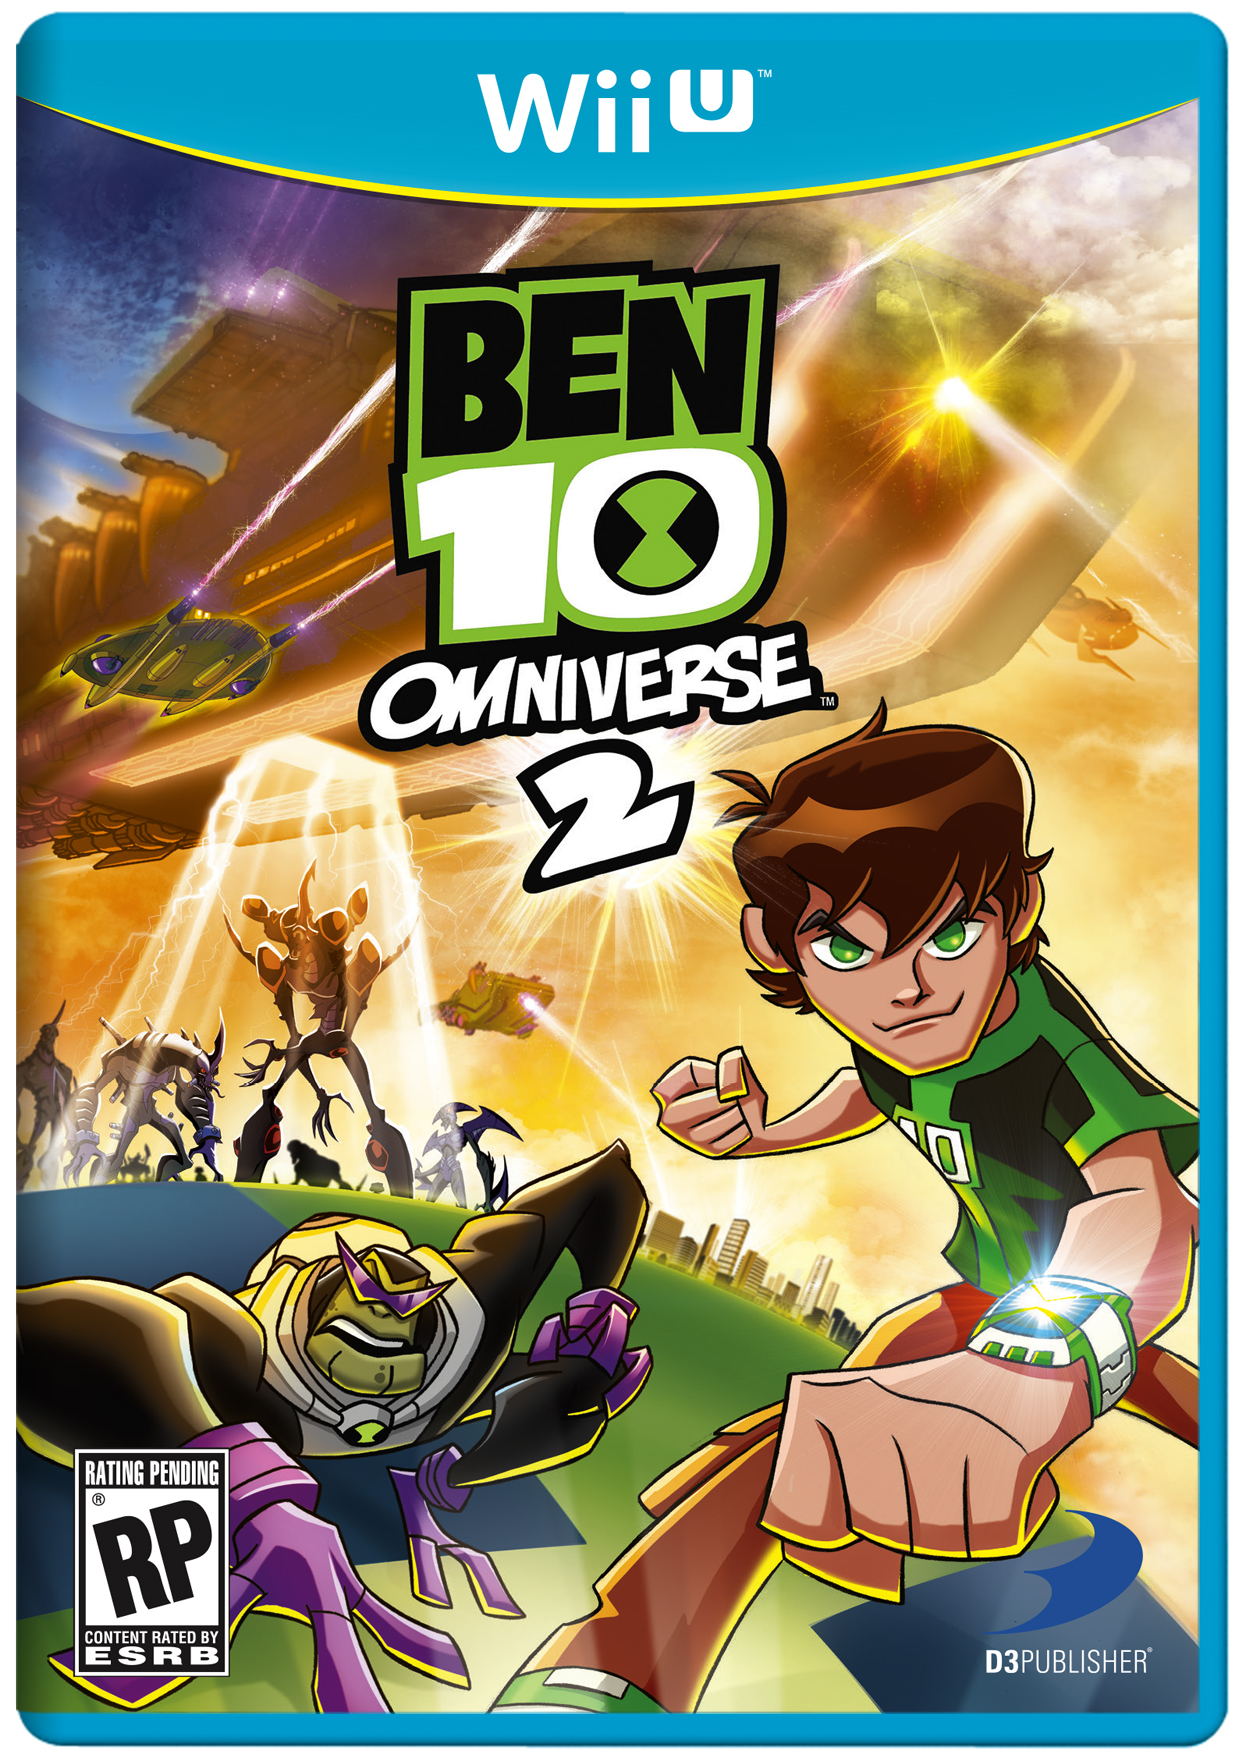 PN Review: Ben 10 Omniverse 2 (Wii U, 3DS)